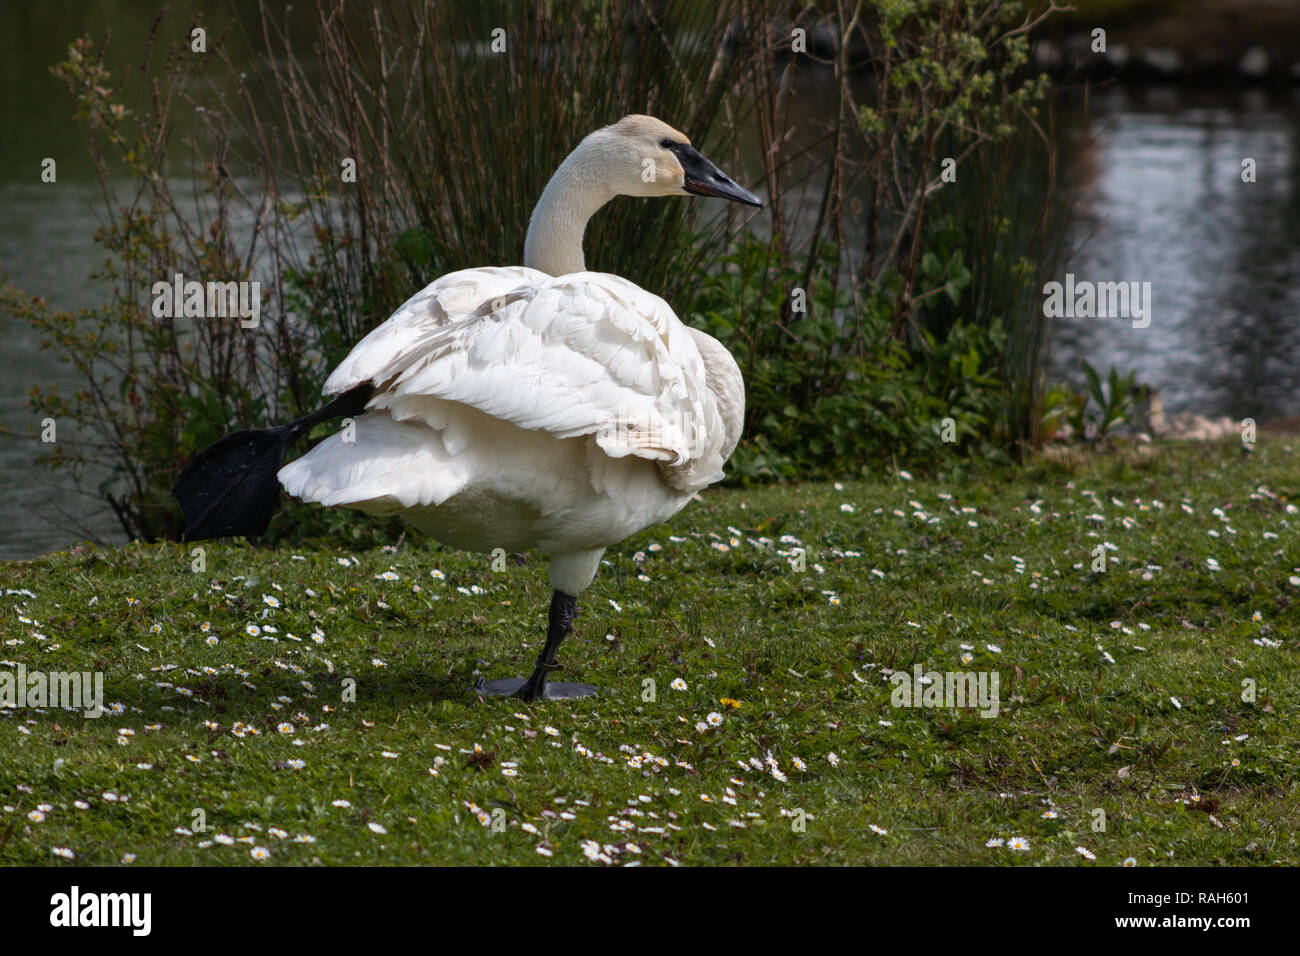 Trumpeter swan standing on one leg - Stock Image